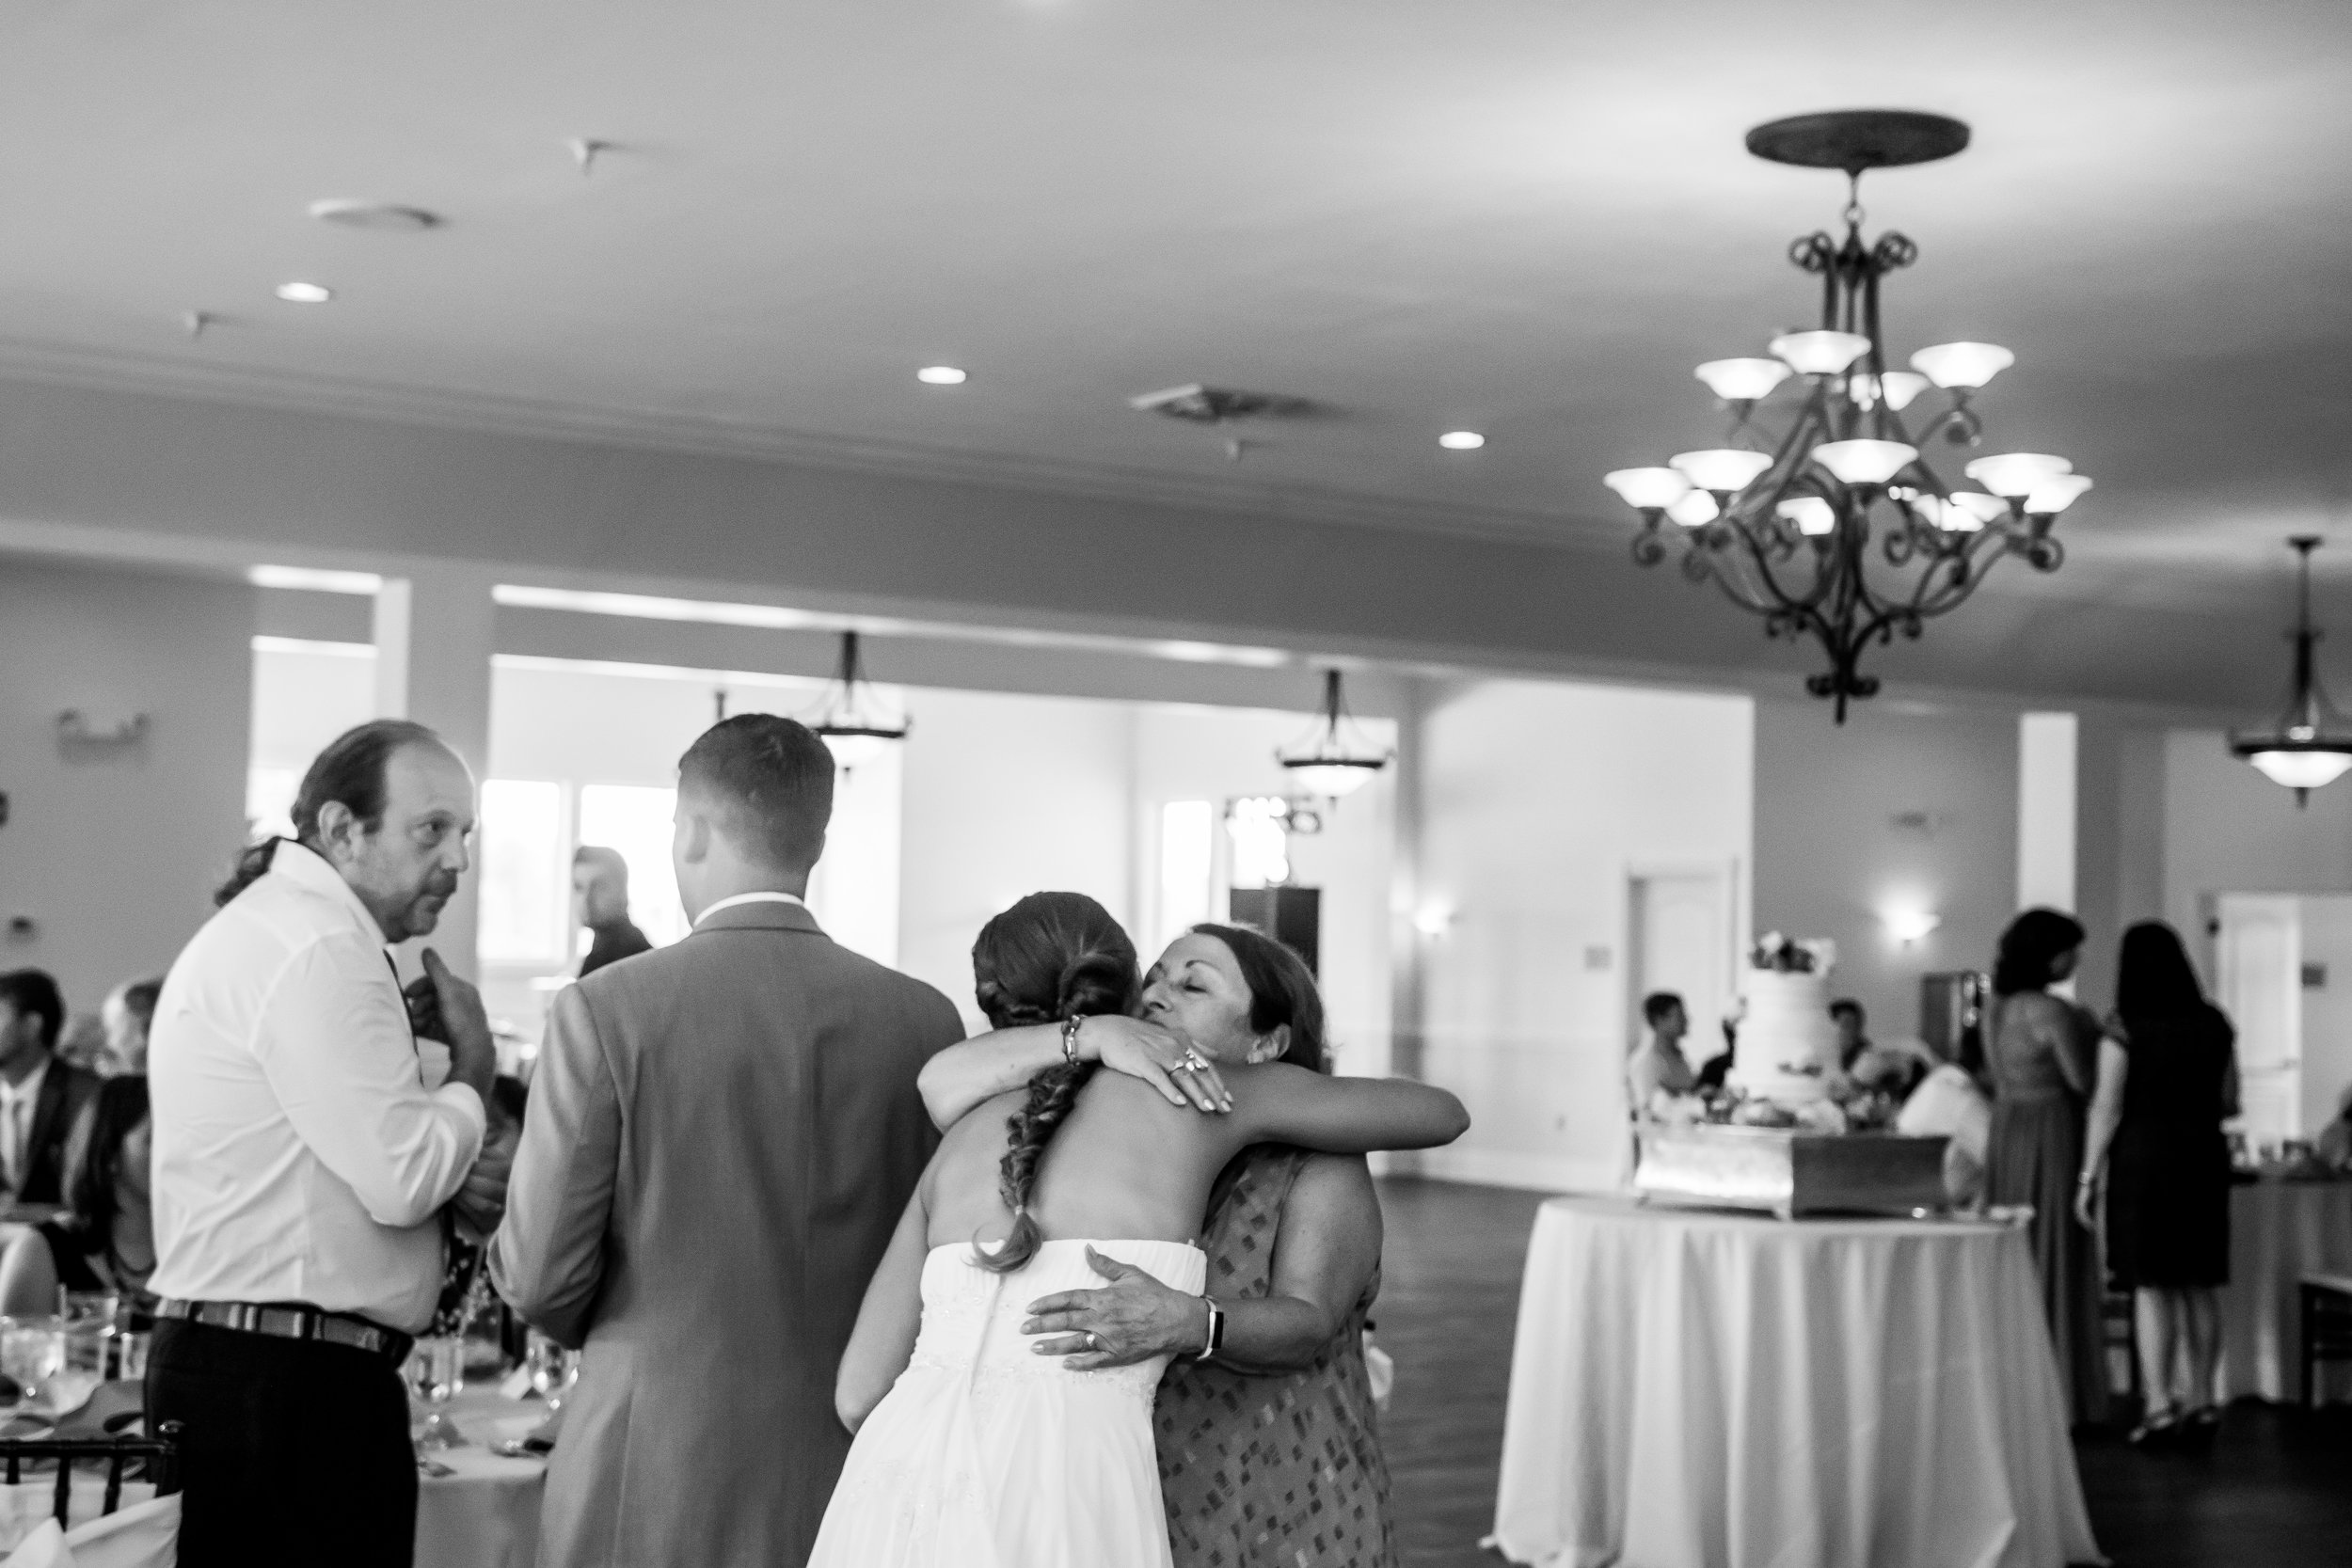 Wedding_Photography_White-566.jpg